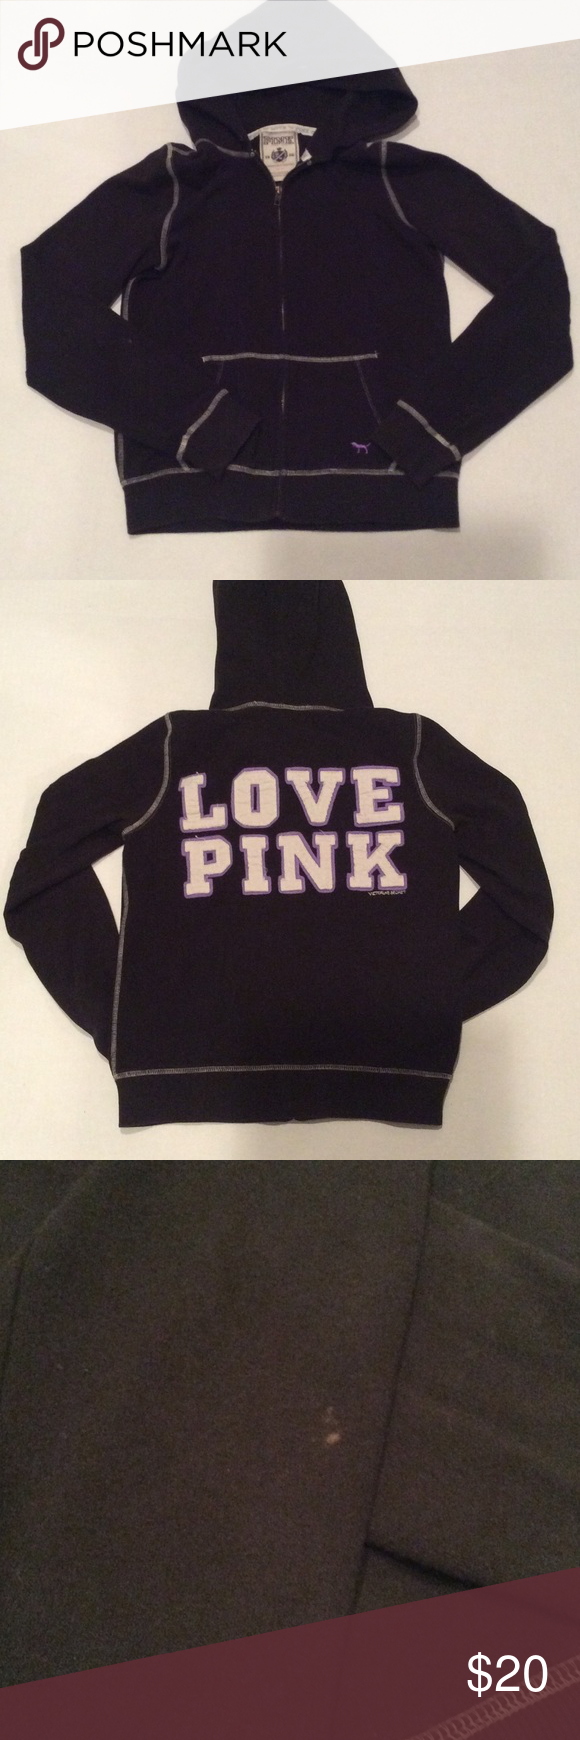 Victoria's Secret Pink Hoodie | Conditioning, Purple and Sweatshirt